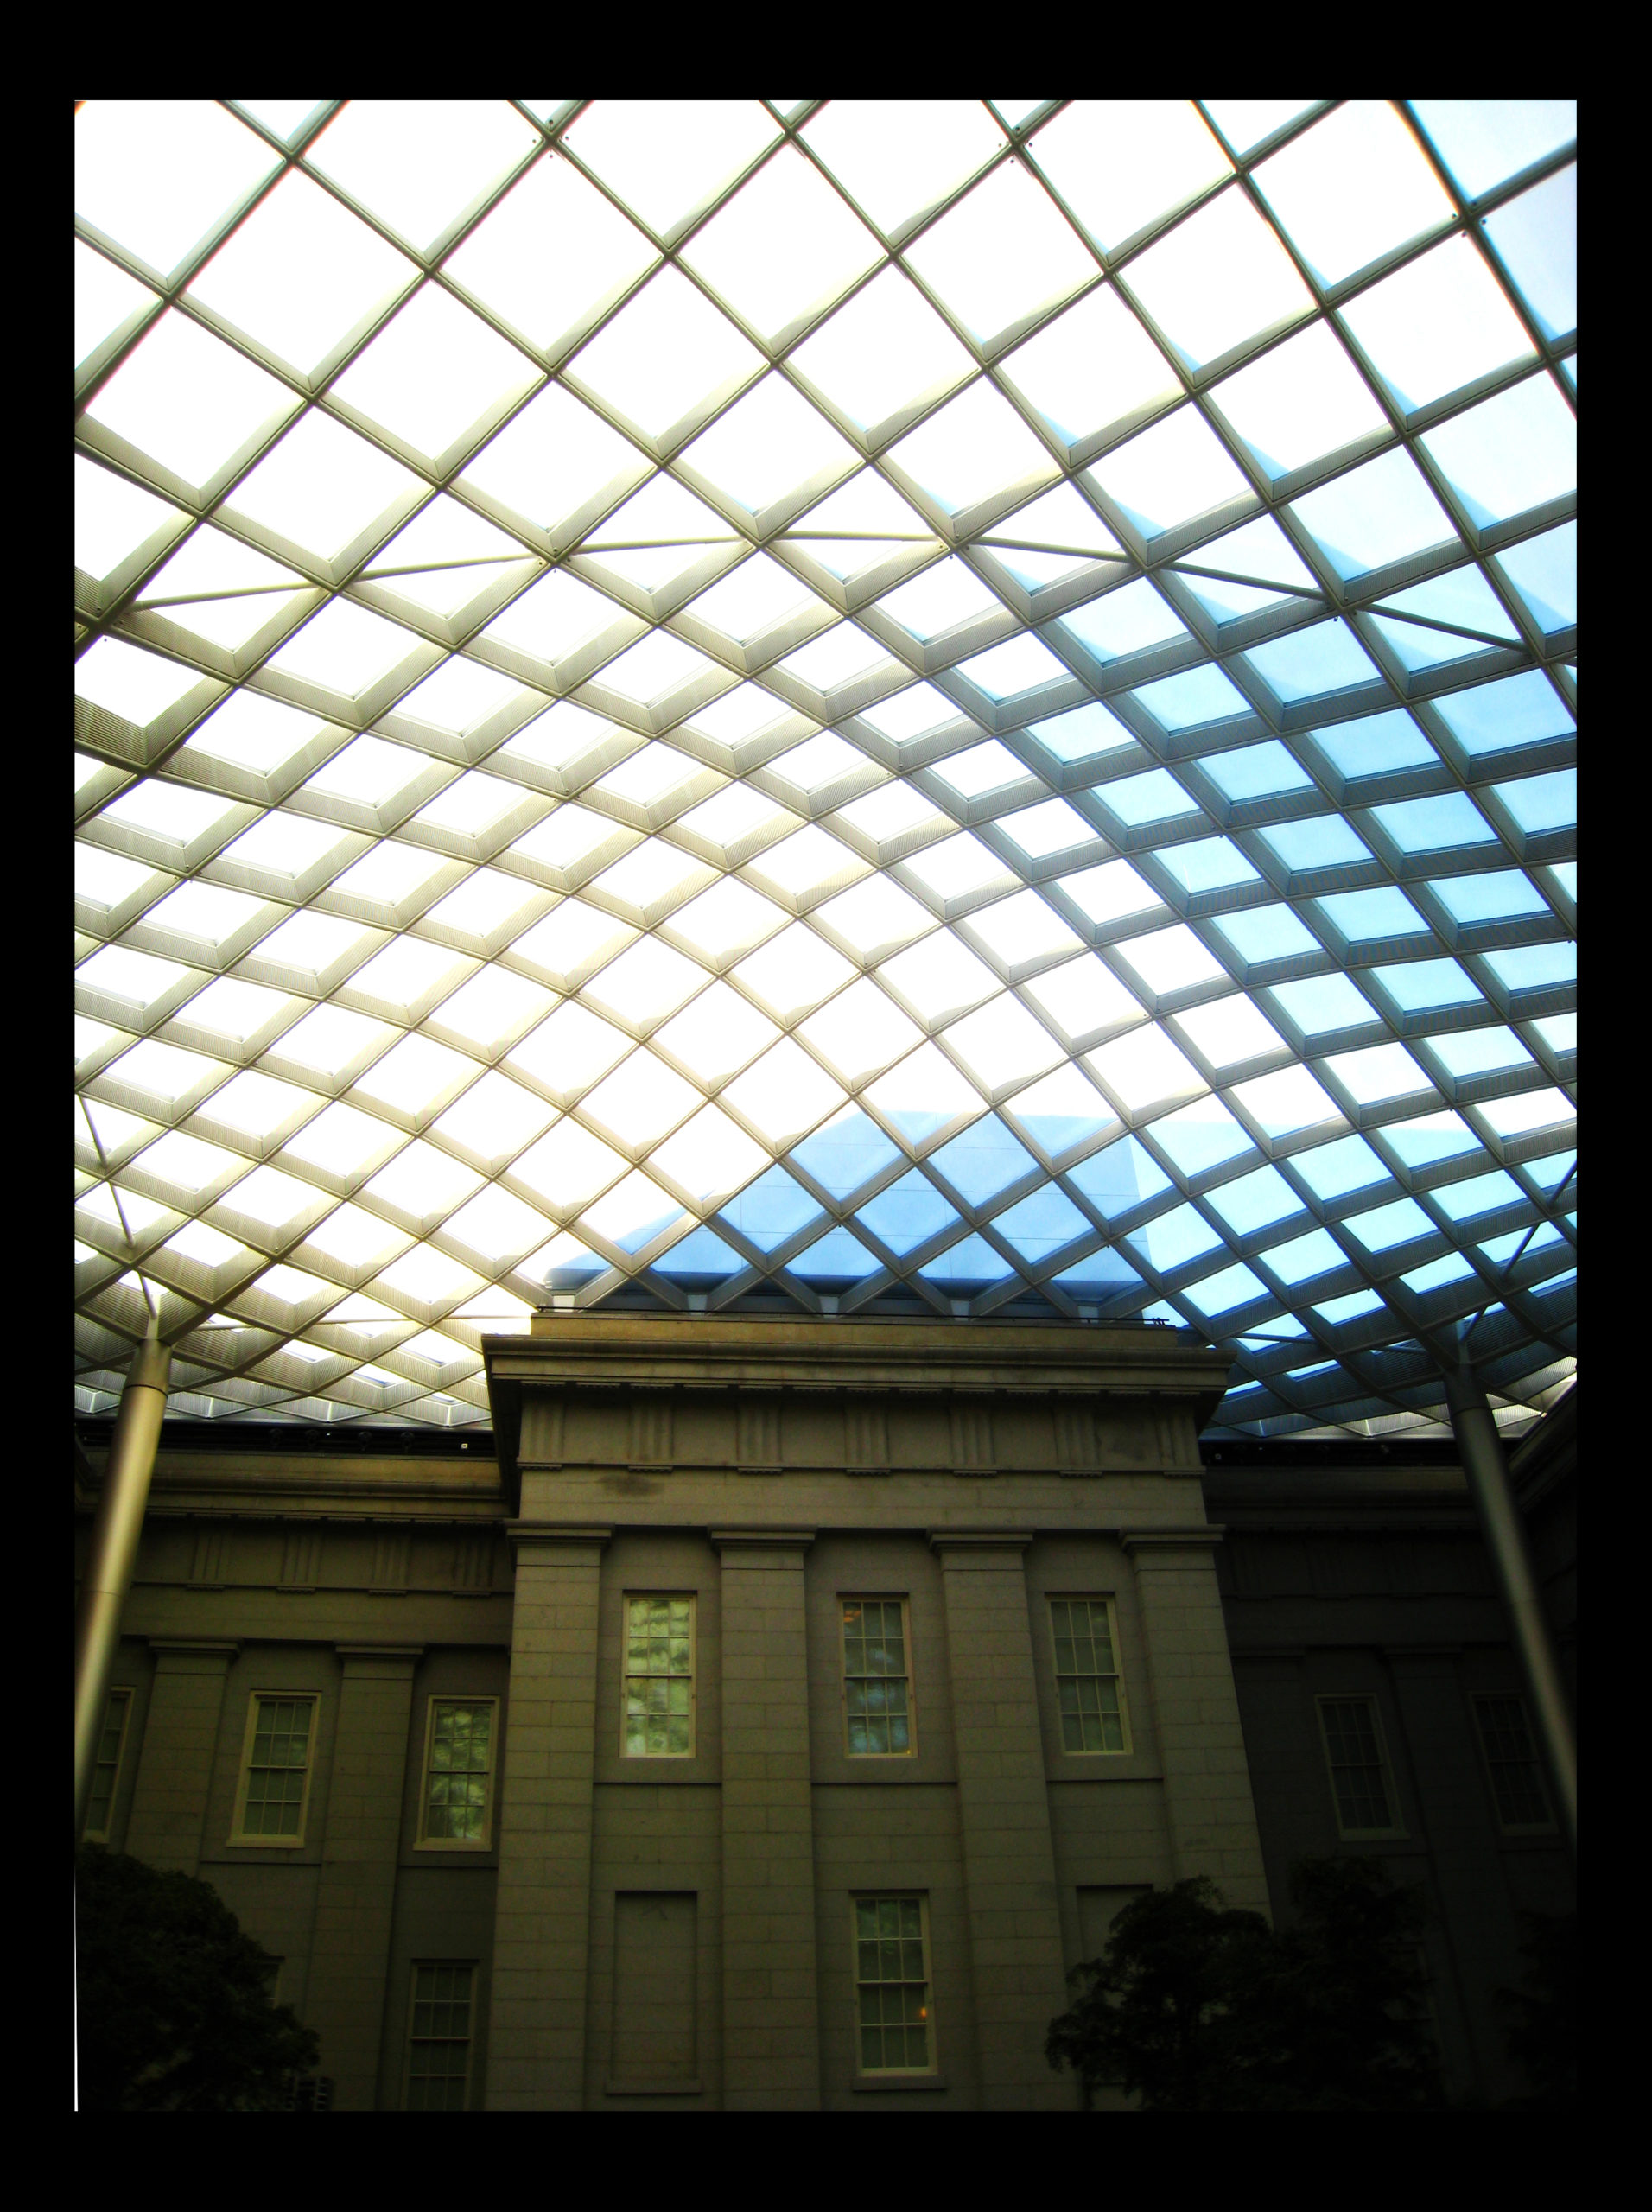 Restored Courtyard of the former US Patent Office, Washington D.C., January 2008